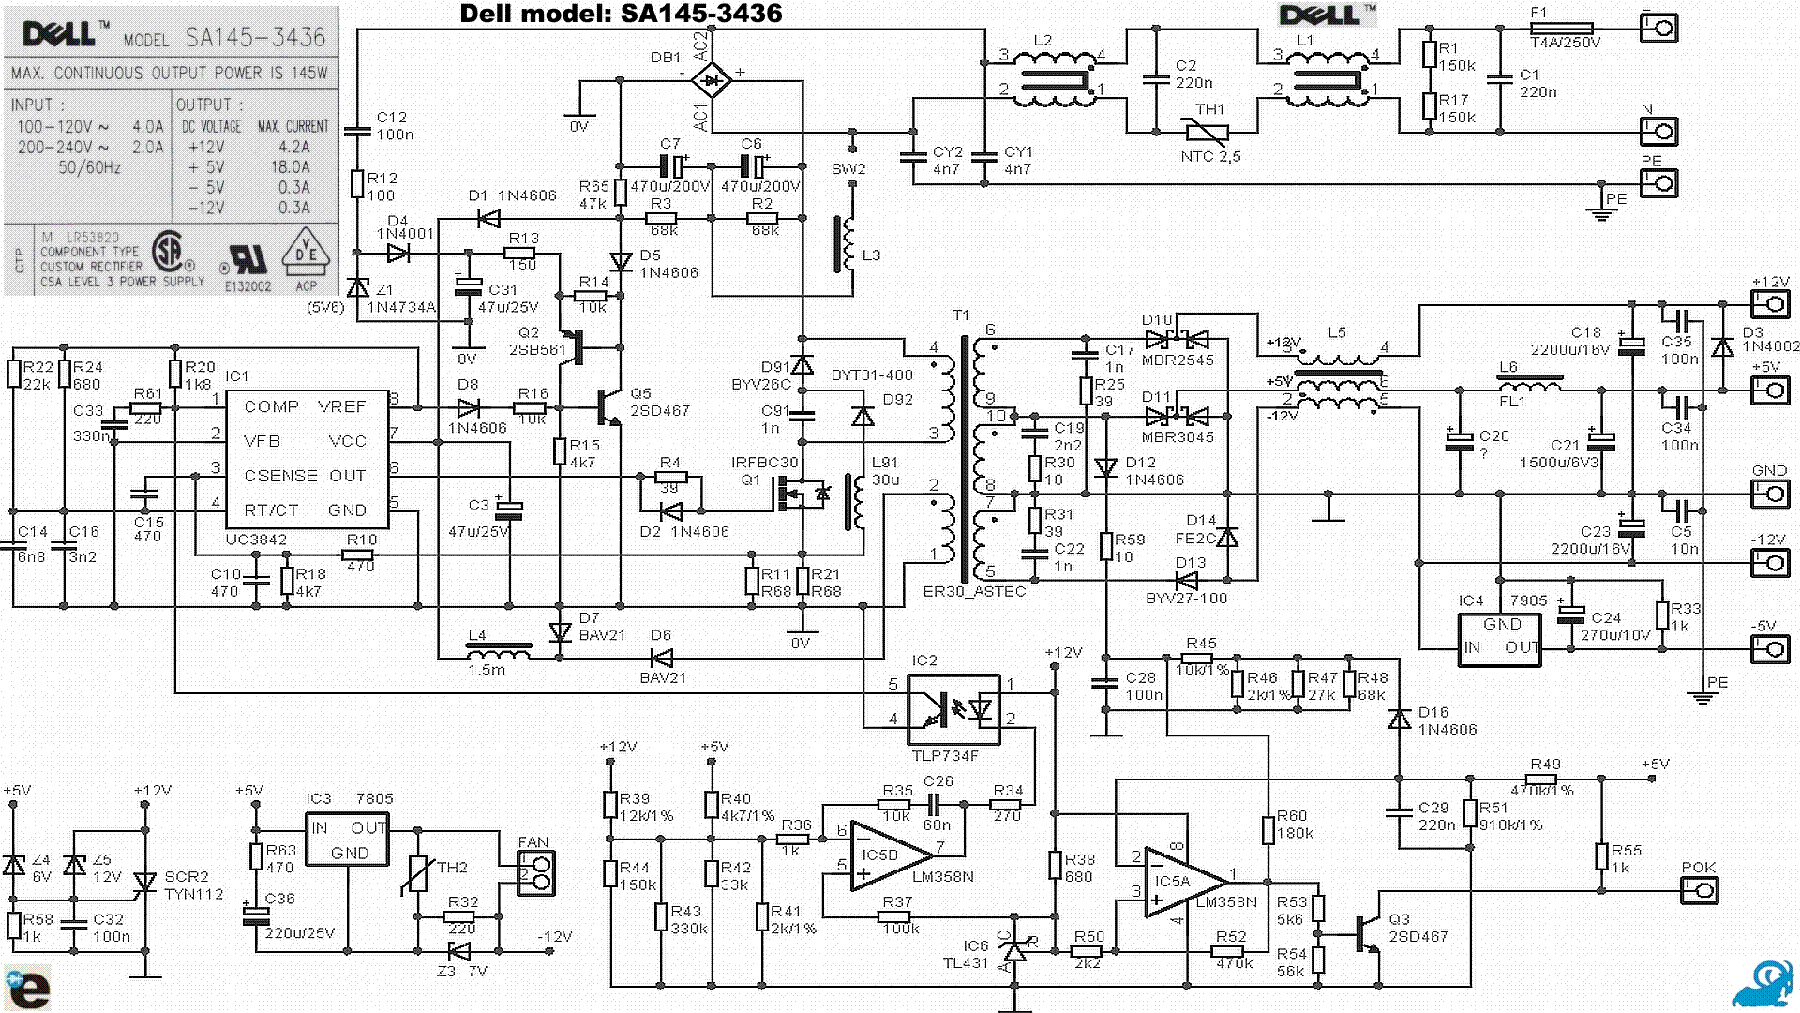 Xbox 360 schematics board wire center dell sa145 3436 power supply schematic service manual download rh elektrotanya com xbox 360 slim power ccuart Choice Image